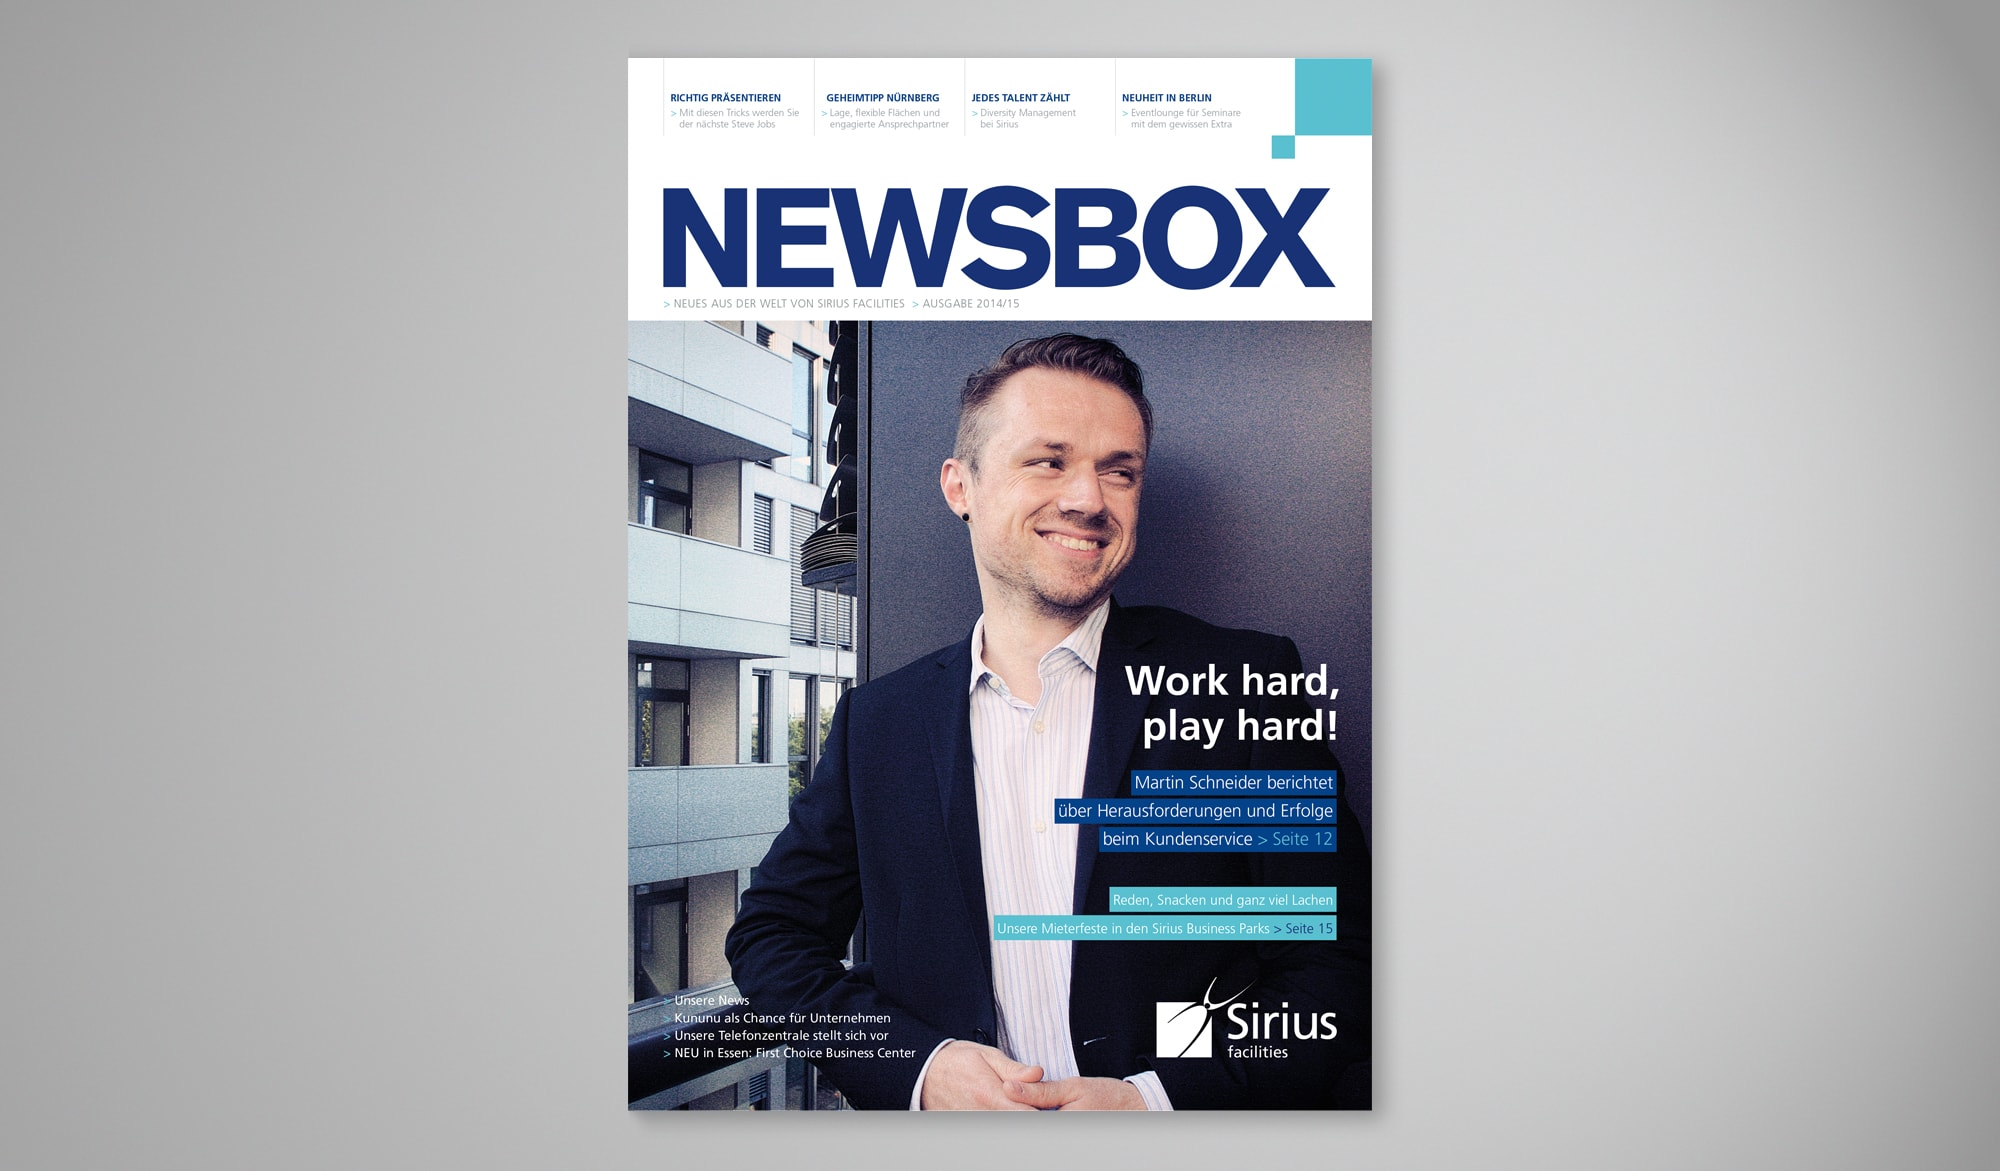 Newsbox magazine issue 1 front cover